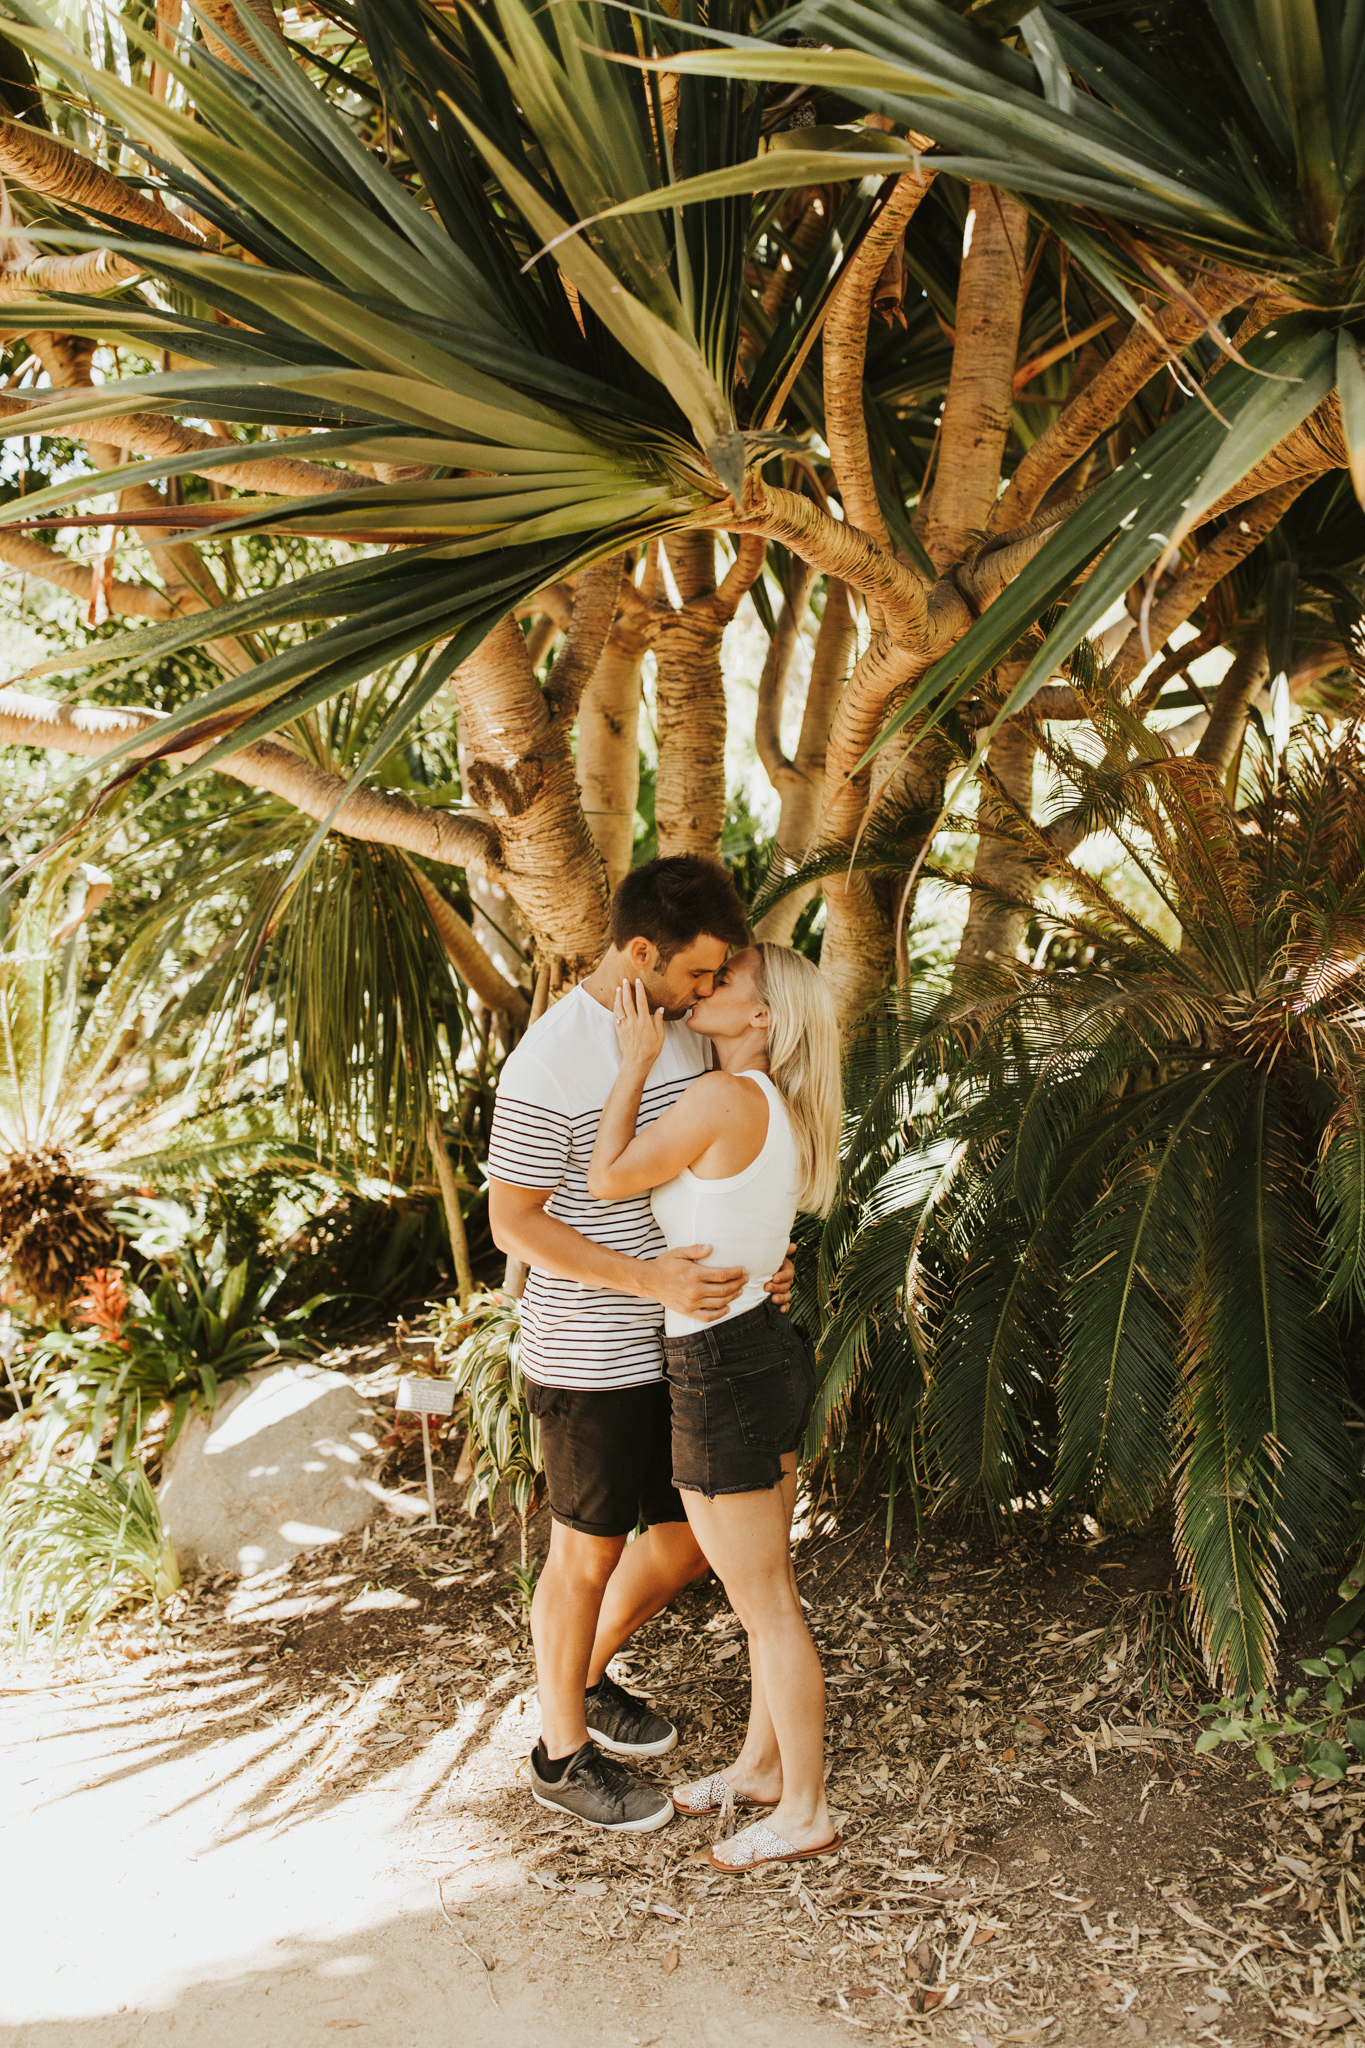 Topher.Katie.Couplessession-19.jpg